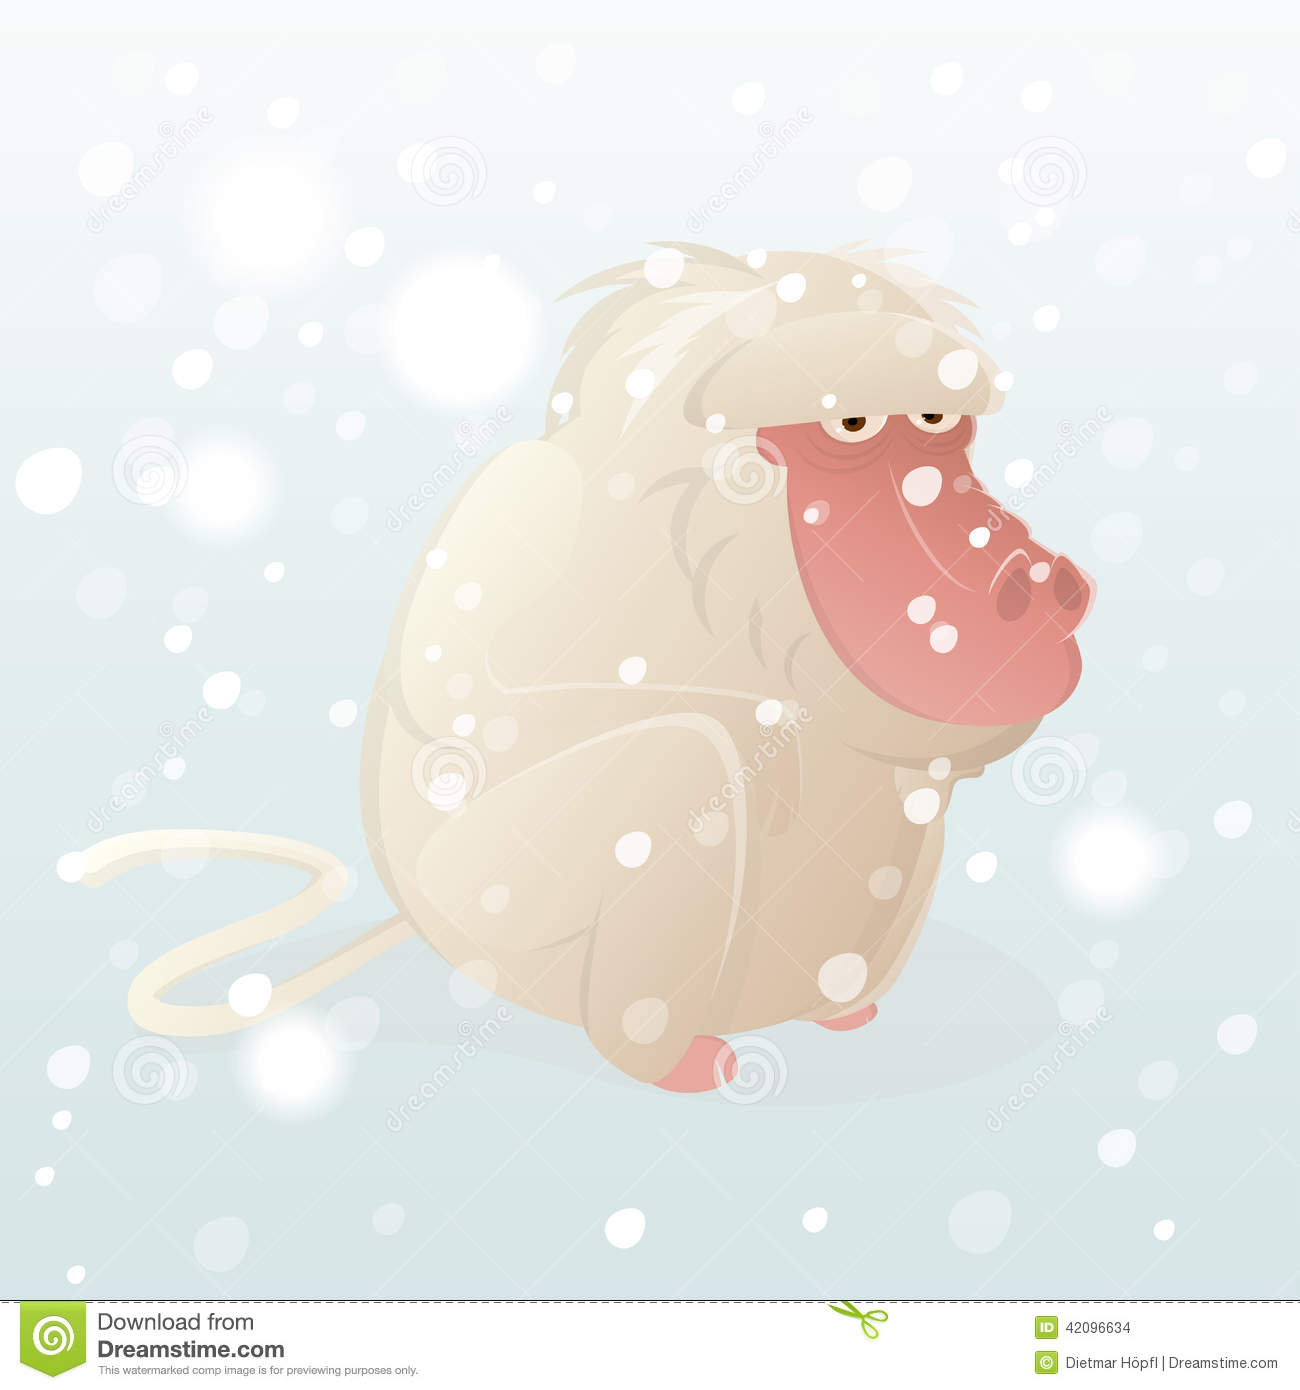 Snow Monkey clipart #17, Download drawings